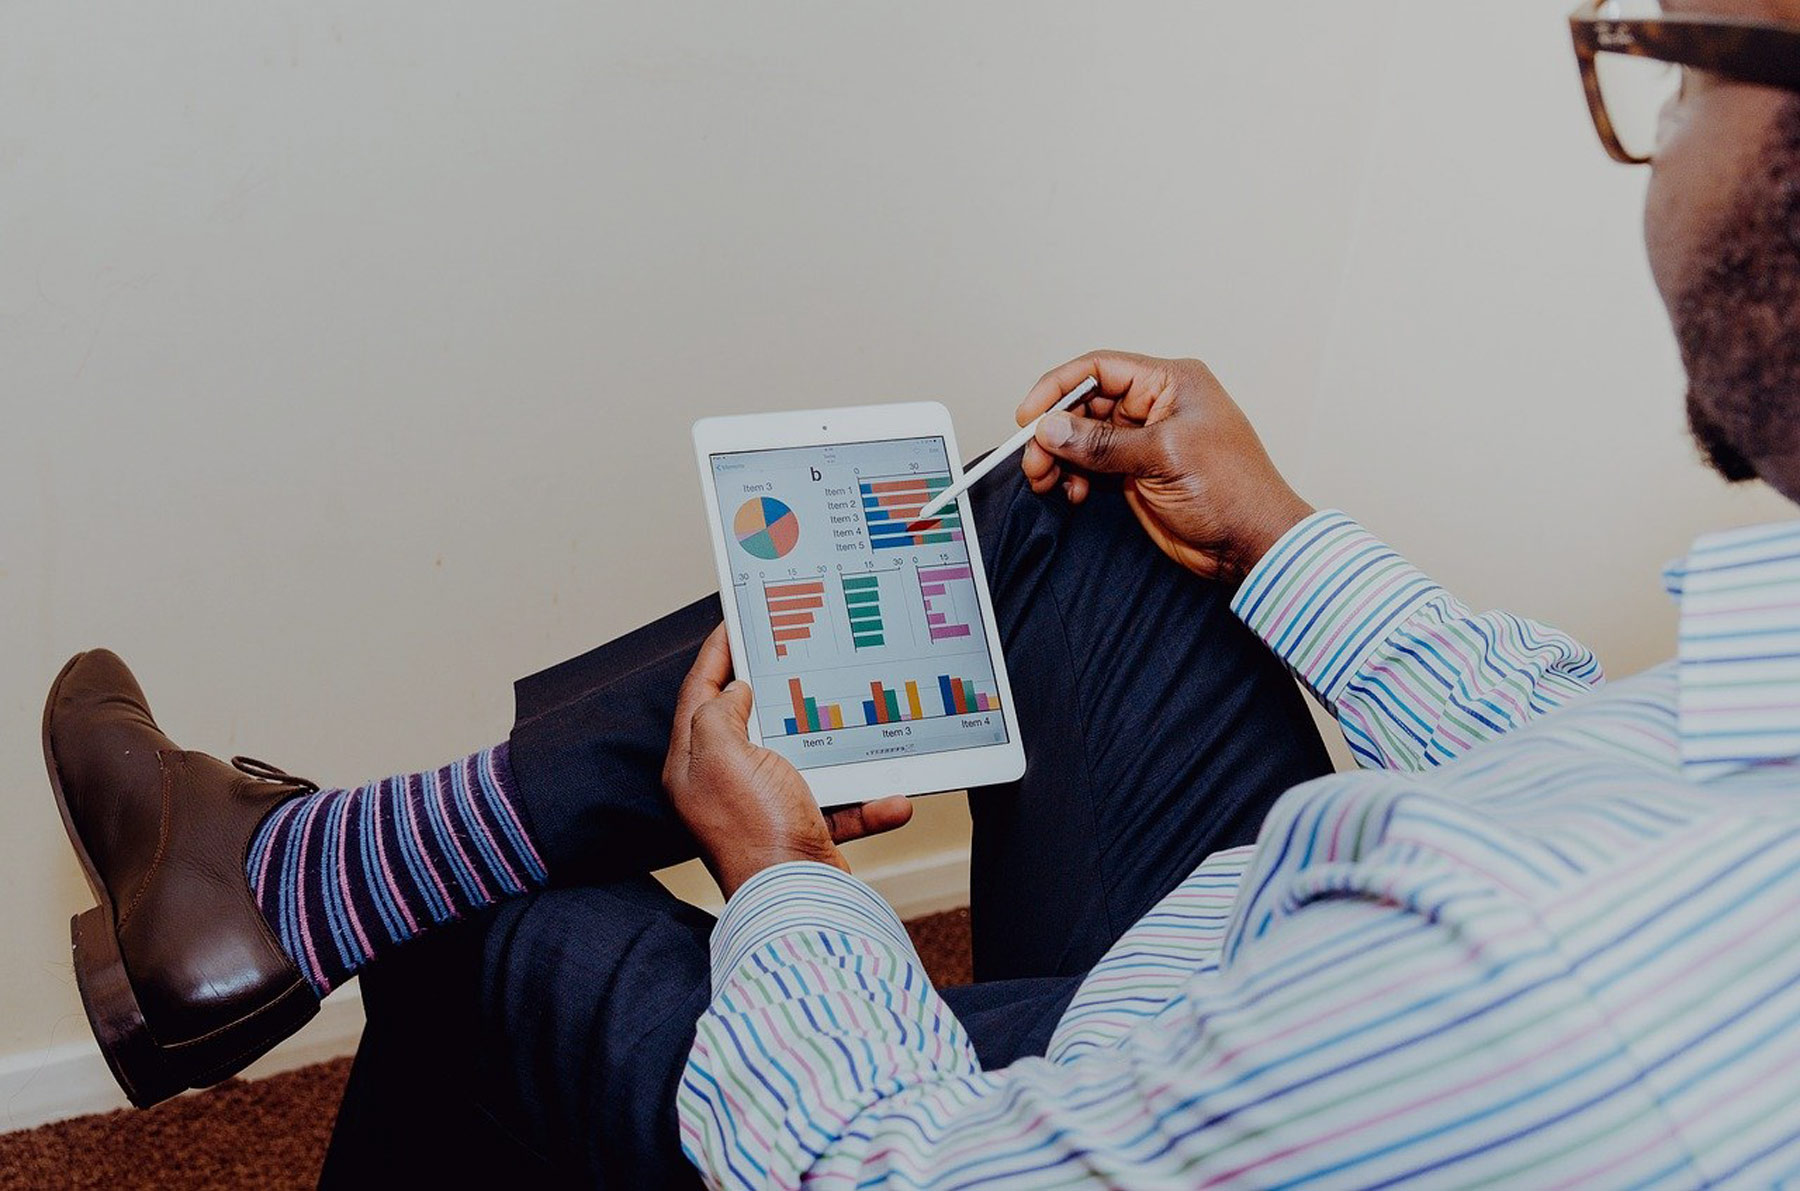 Choosing the right apps for your business